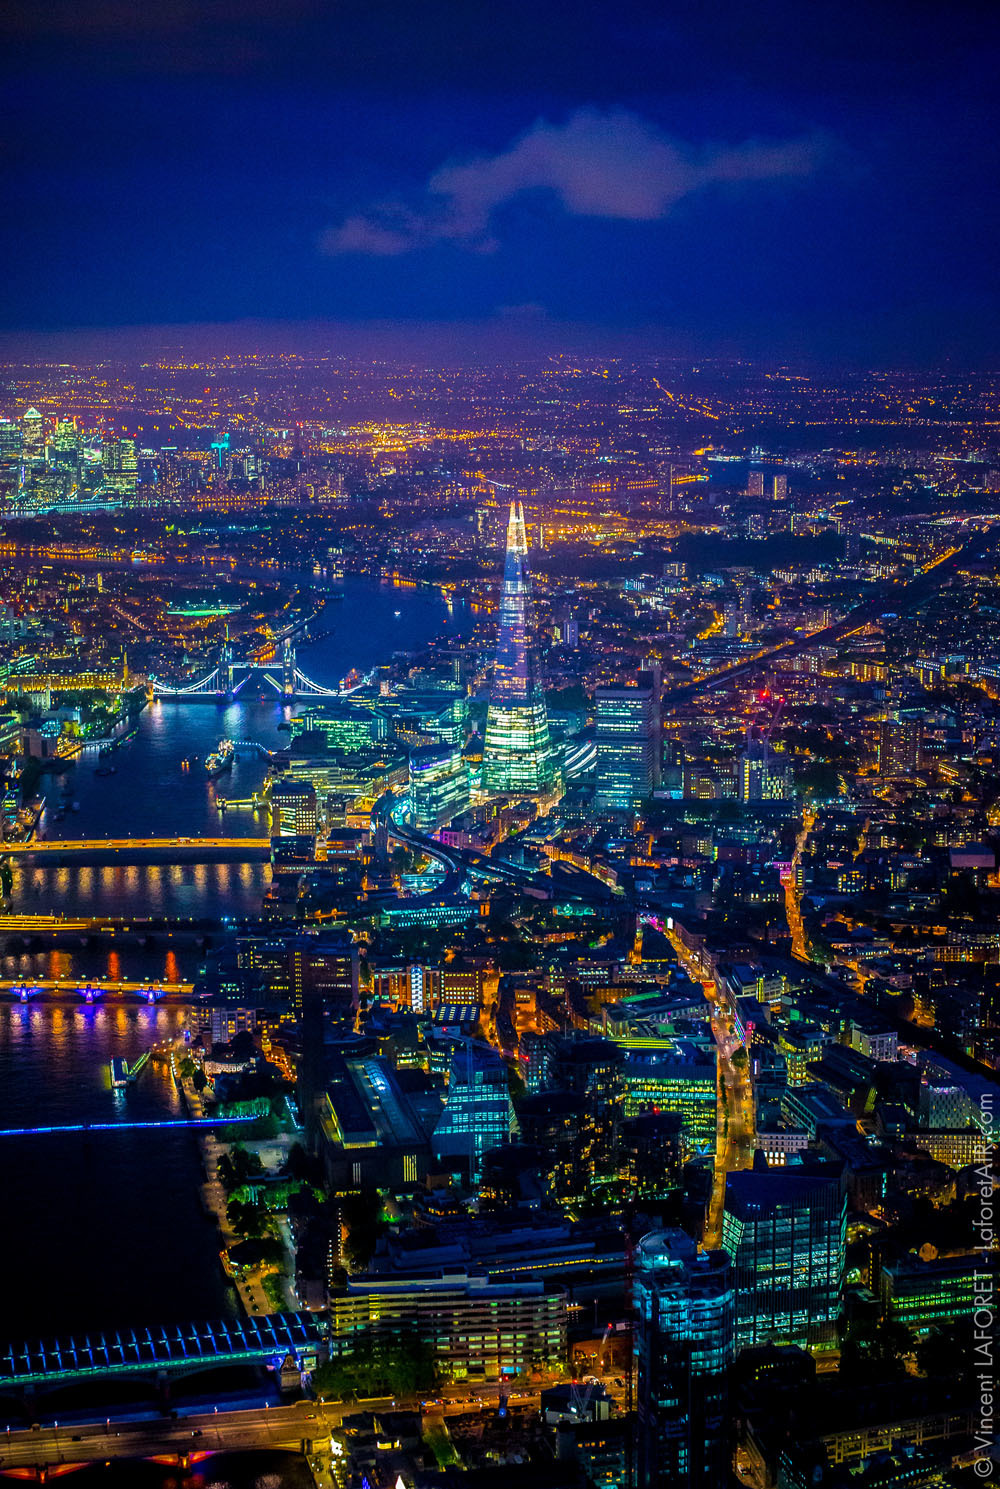 Aerial photo of the Shard and Thames at night.